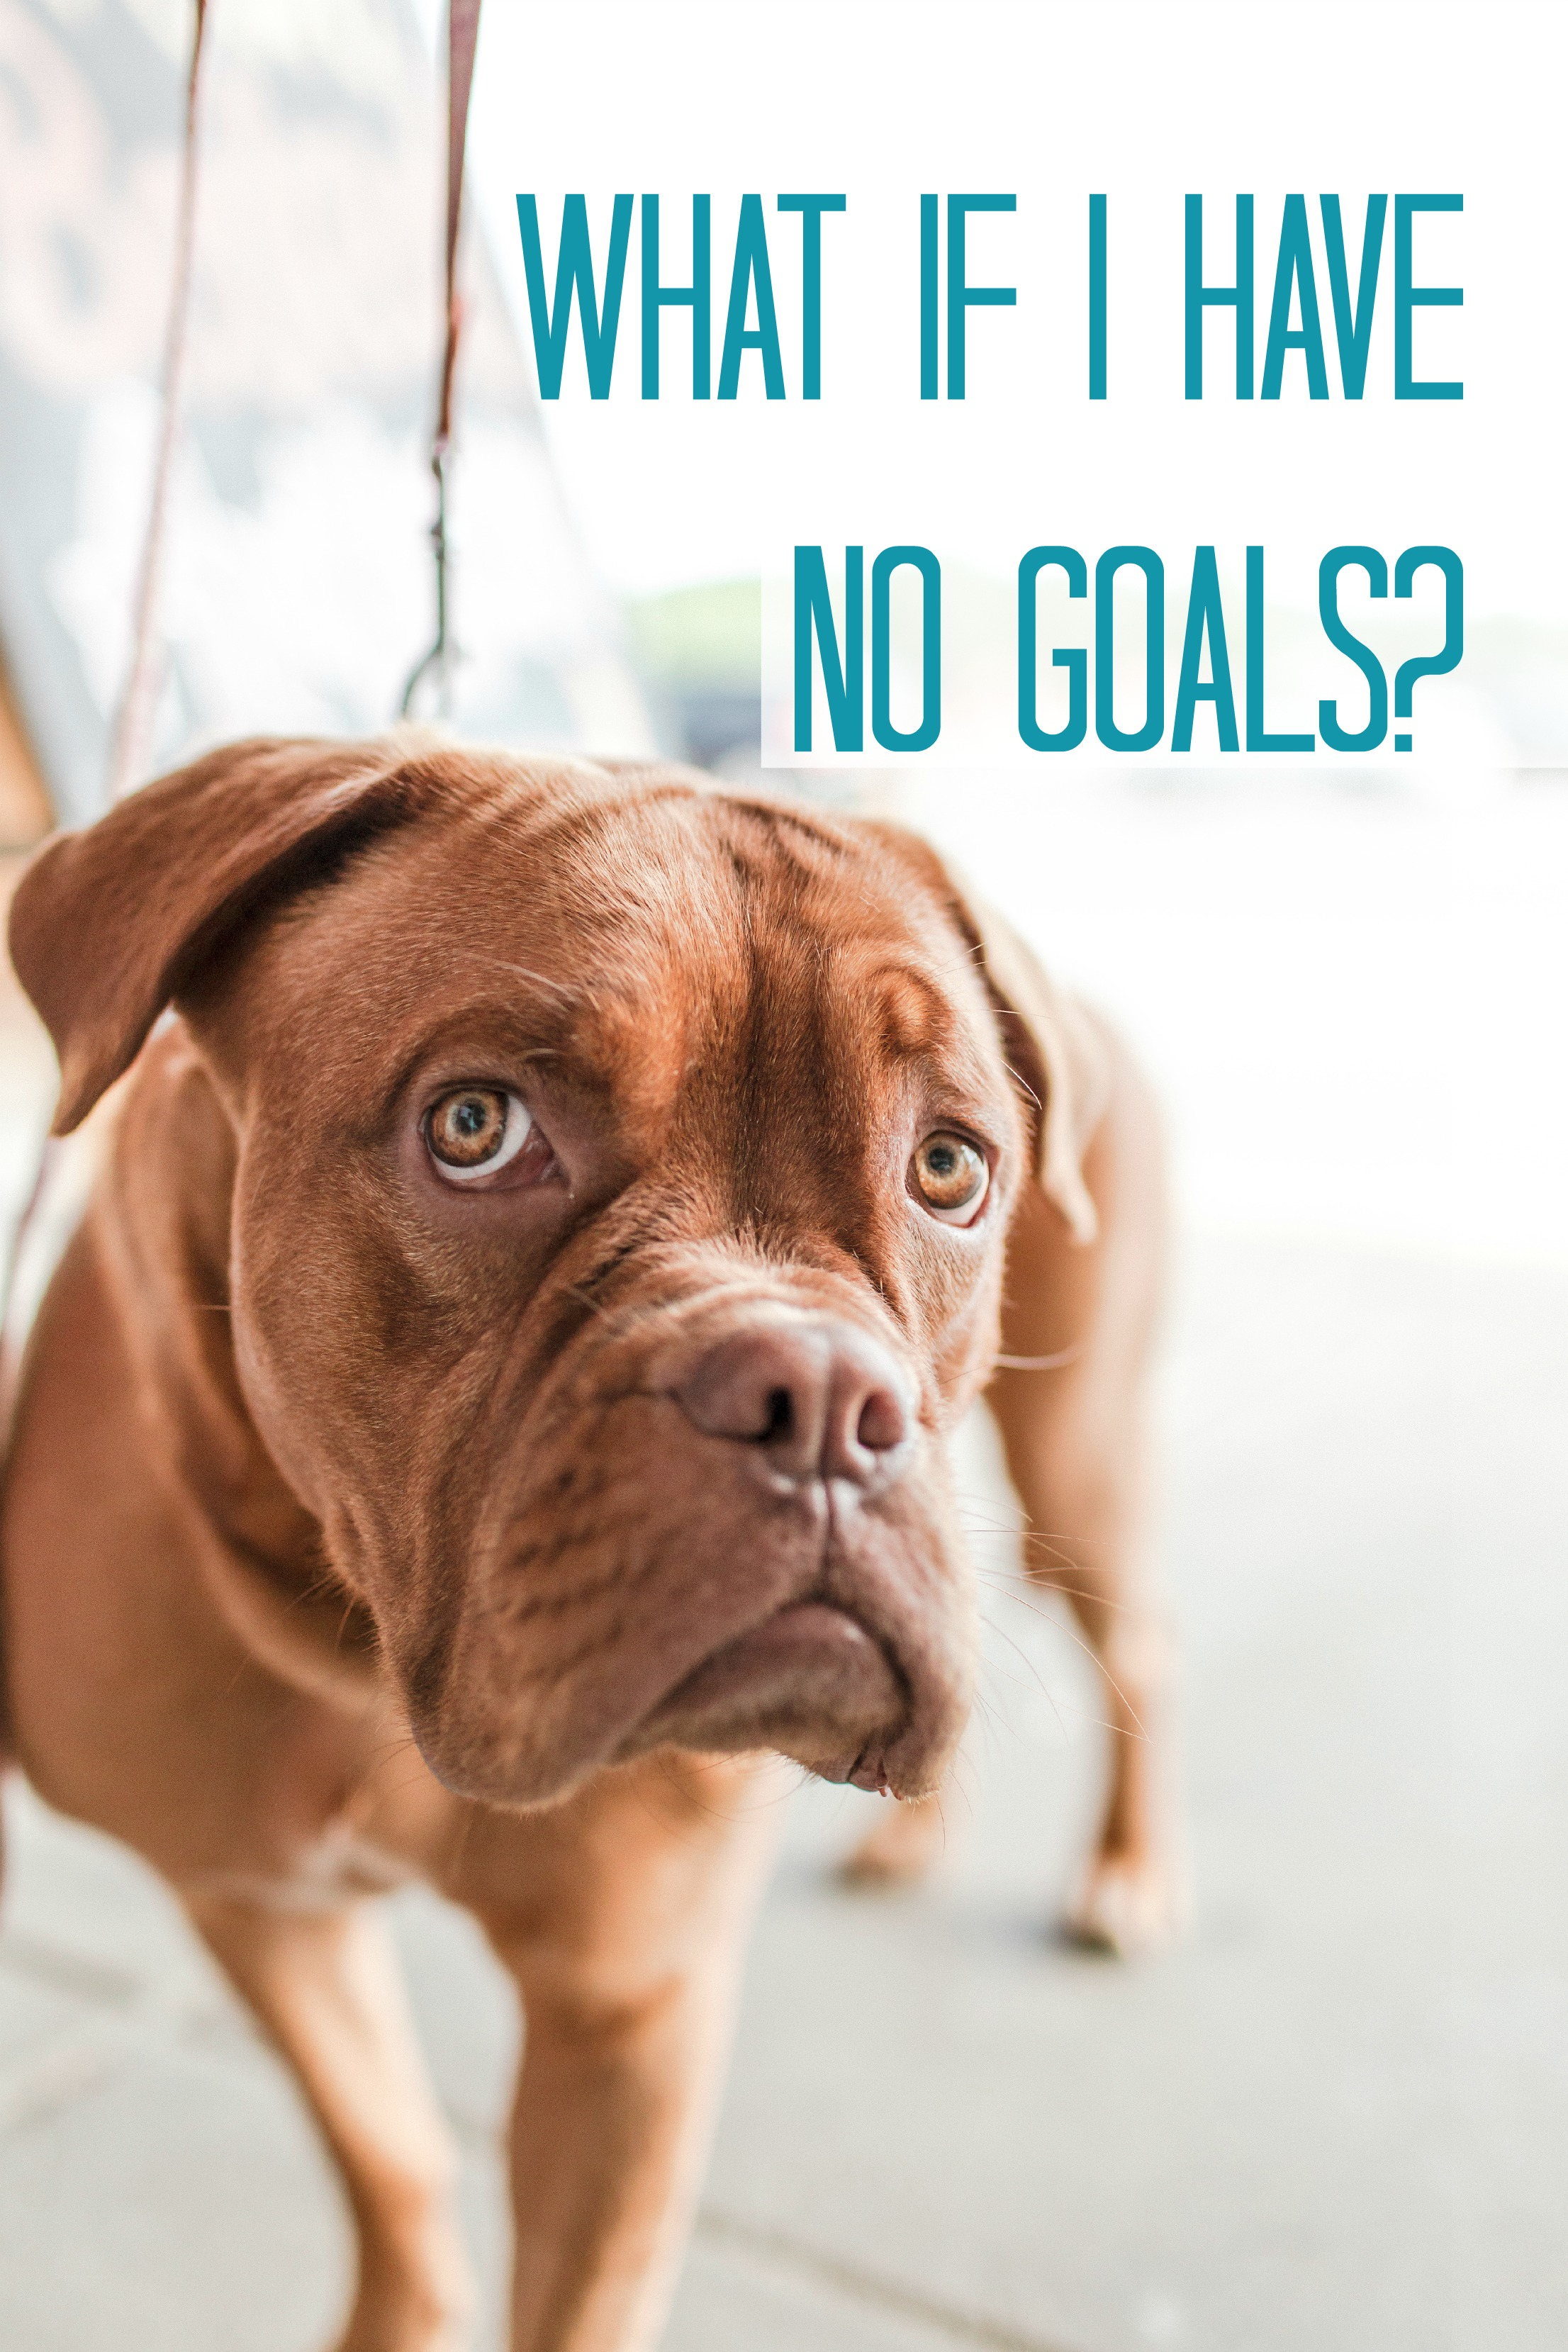 What if I have no goals?